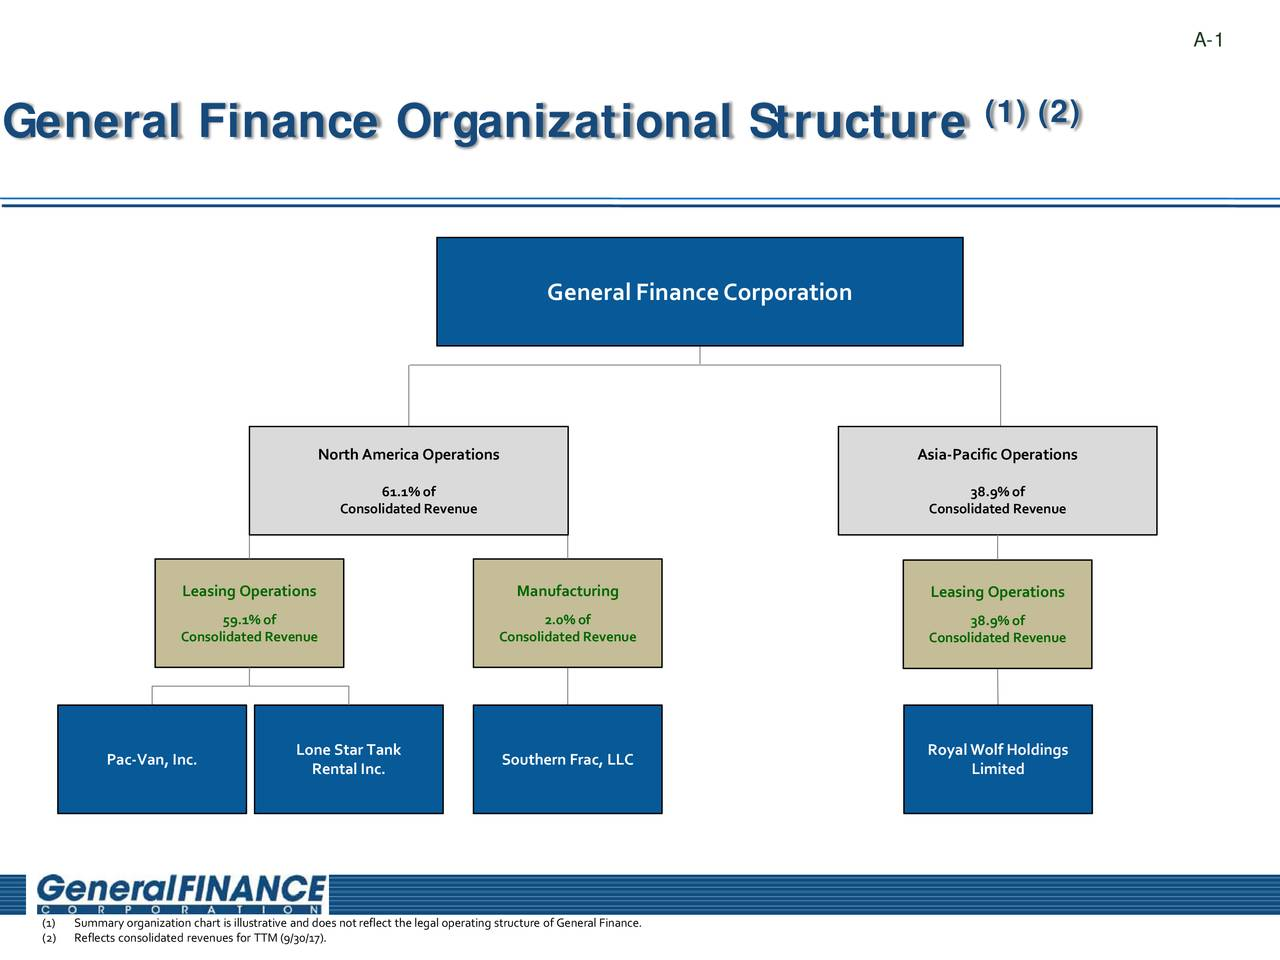 the profile of a company american general corporation in financial organization Company, american general life insurance company, the national life and accident insurance company and the variable annuity life insurance company acquired by american international group, inc 02-25-1998.